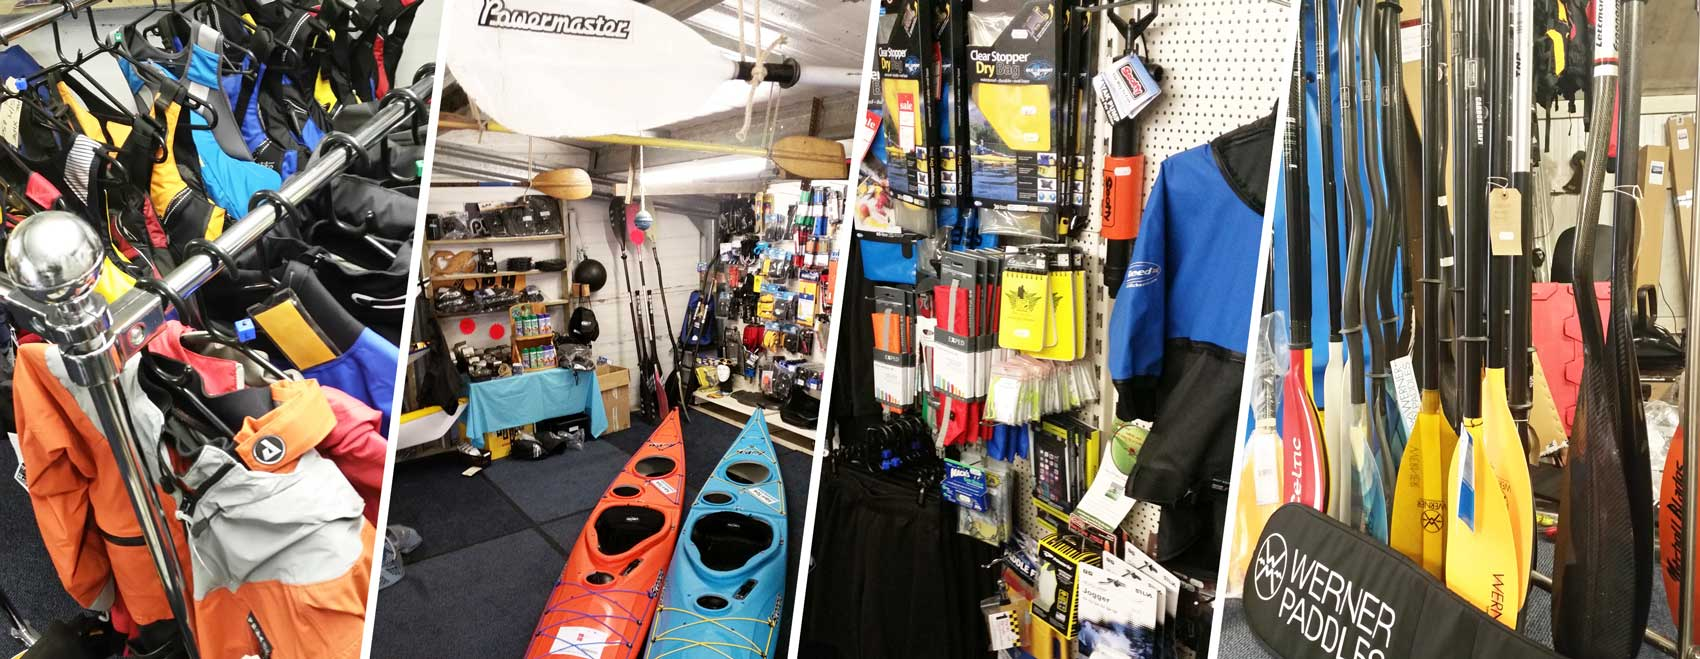 Karitek's Ayrshire kayaking gear showrom and shop